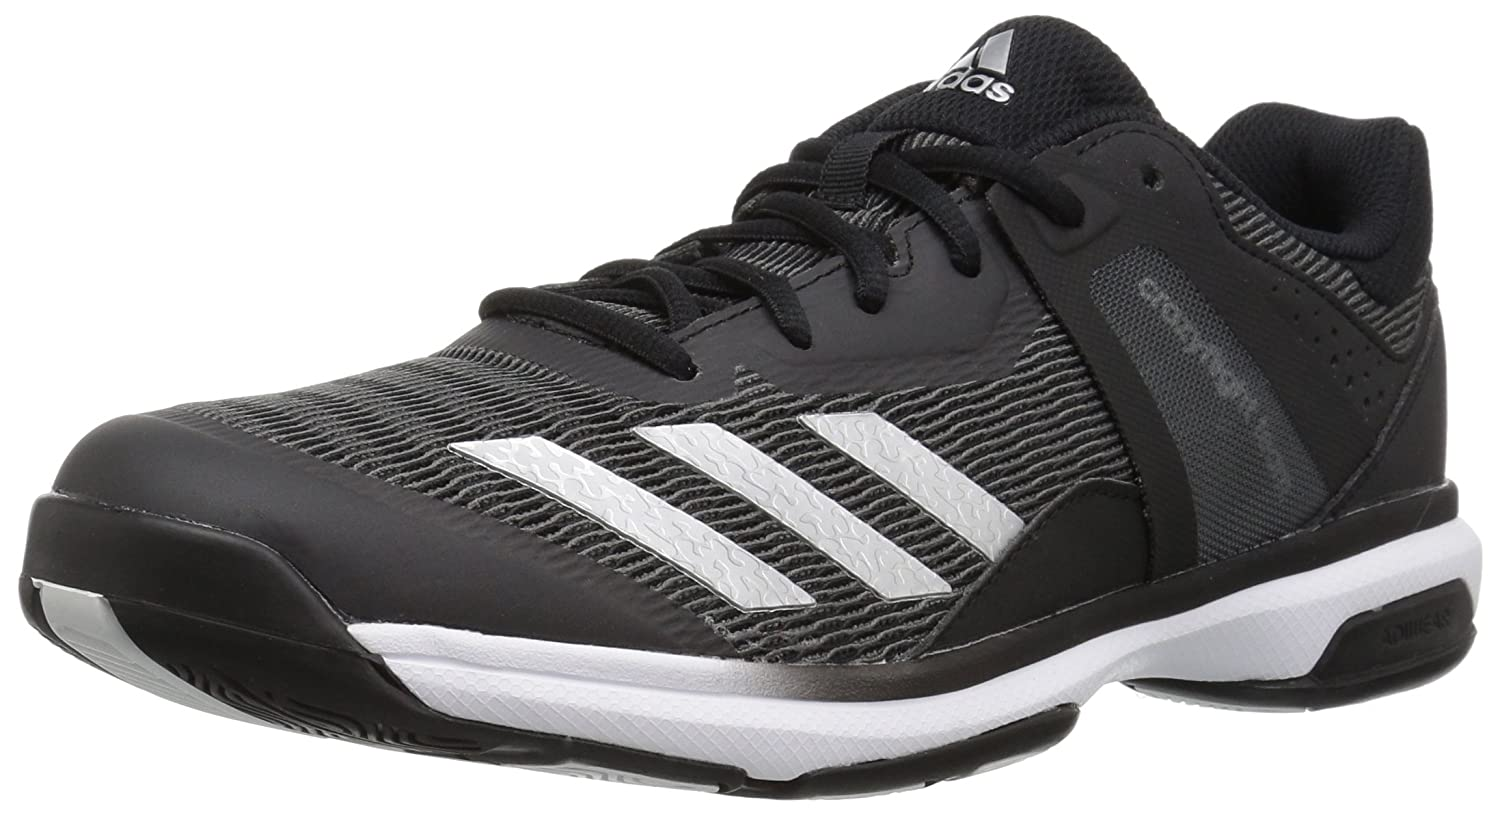 adidas Women's Crazyflight Team Volleyball Shoe B01N9HCLD0 12.5 M US|Black/Metallic Silver/Black